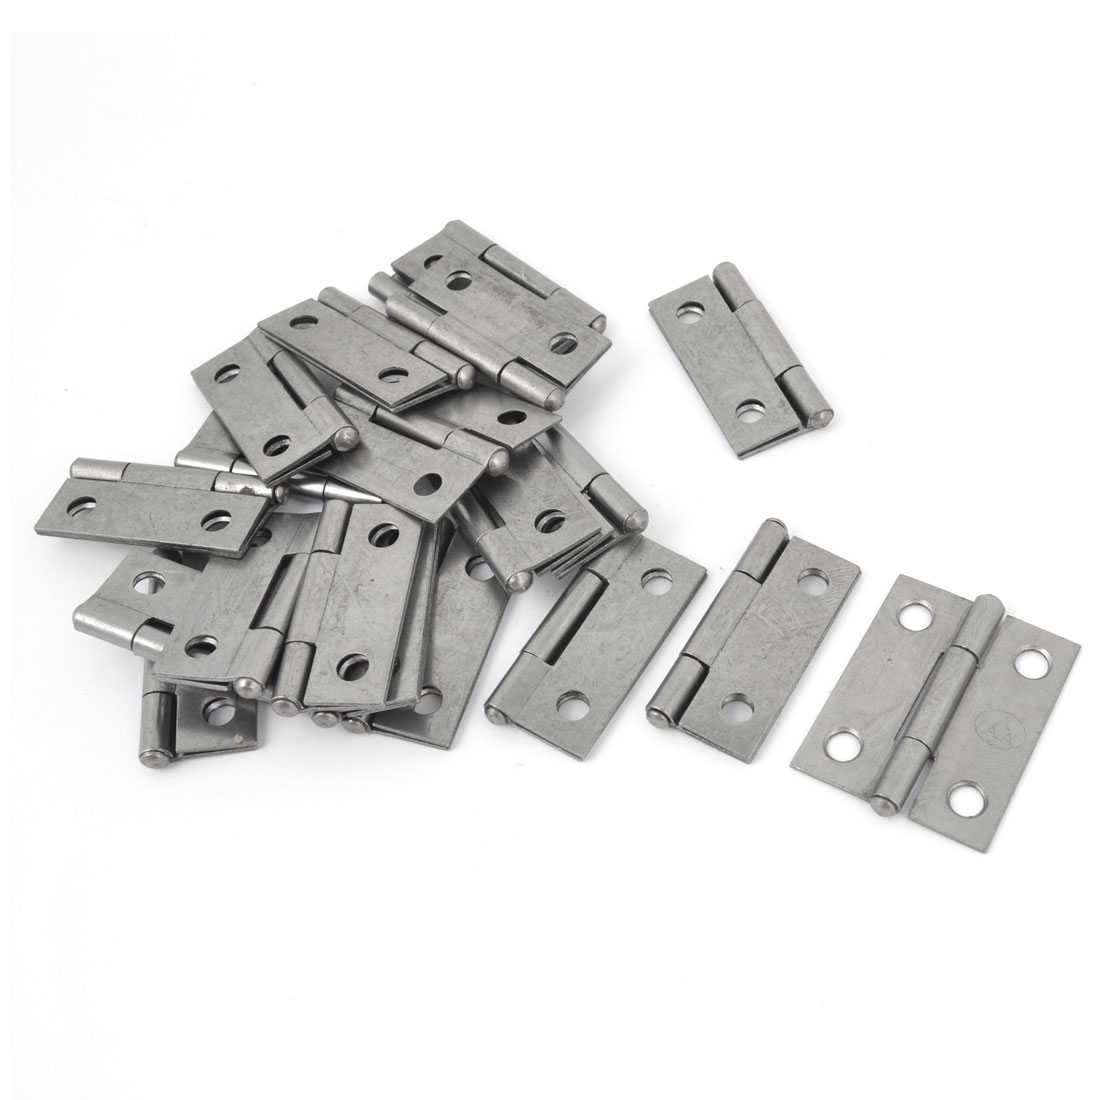 "20 Pcs Metal Foldable Rotating Closet Cupboard Cabinet Door Hinge 1.5"" Long"